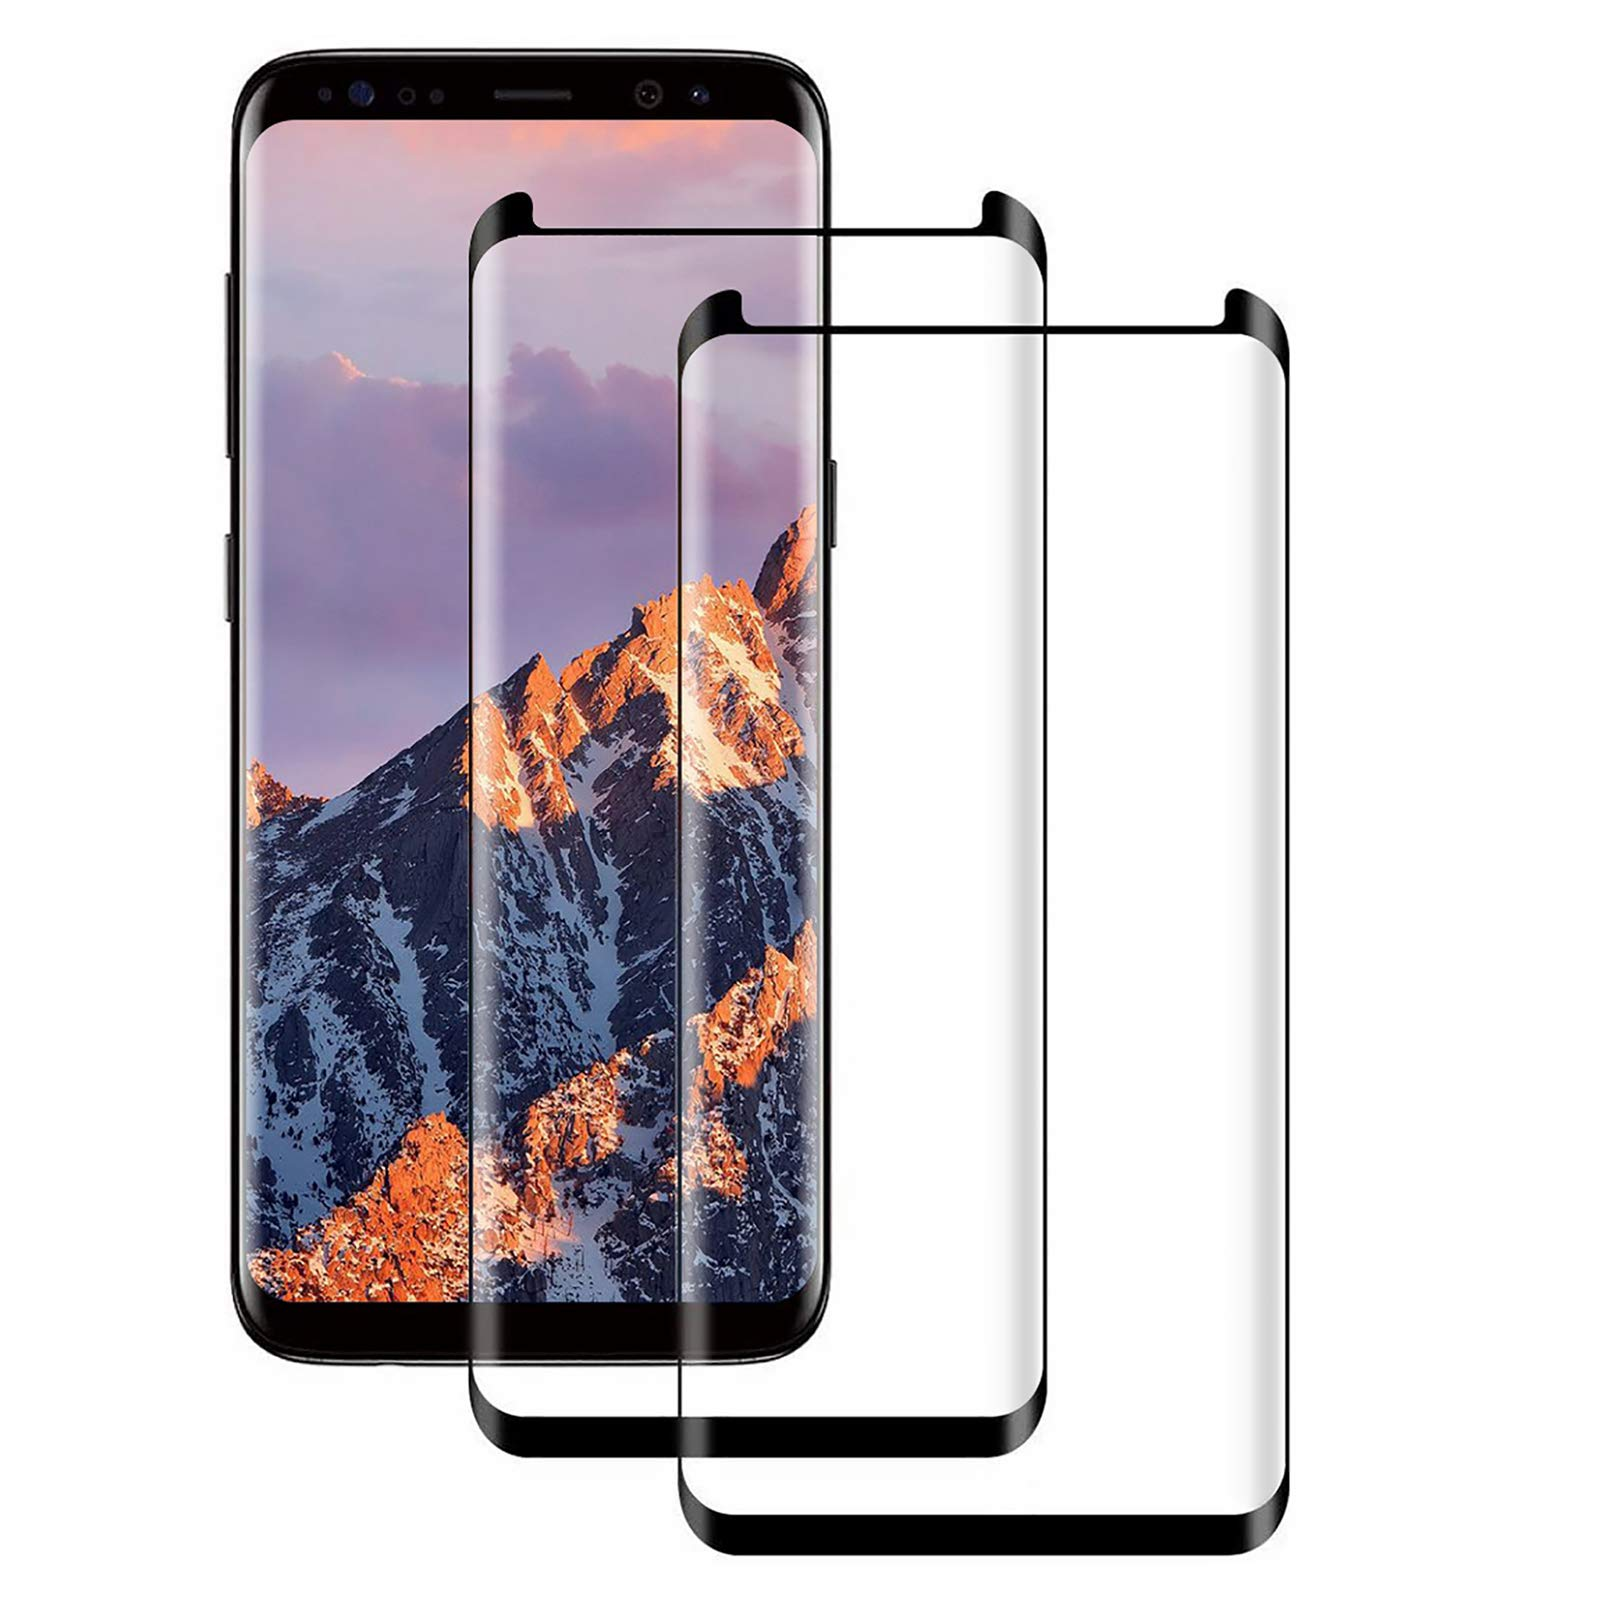 Galaxy S9 Screen Protector, [2 Pack] Case Friendly,Bubble-Free,9H Hardness 3D Curved, Scratch-Resistant for Samsung S9…